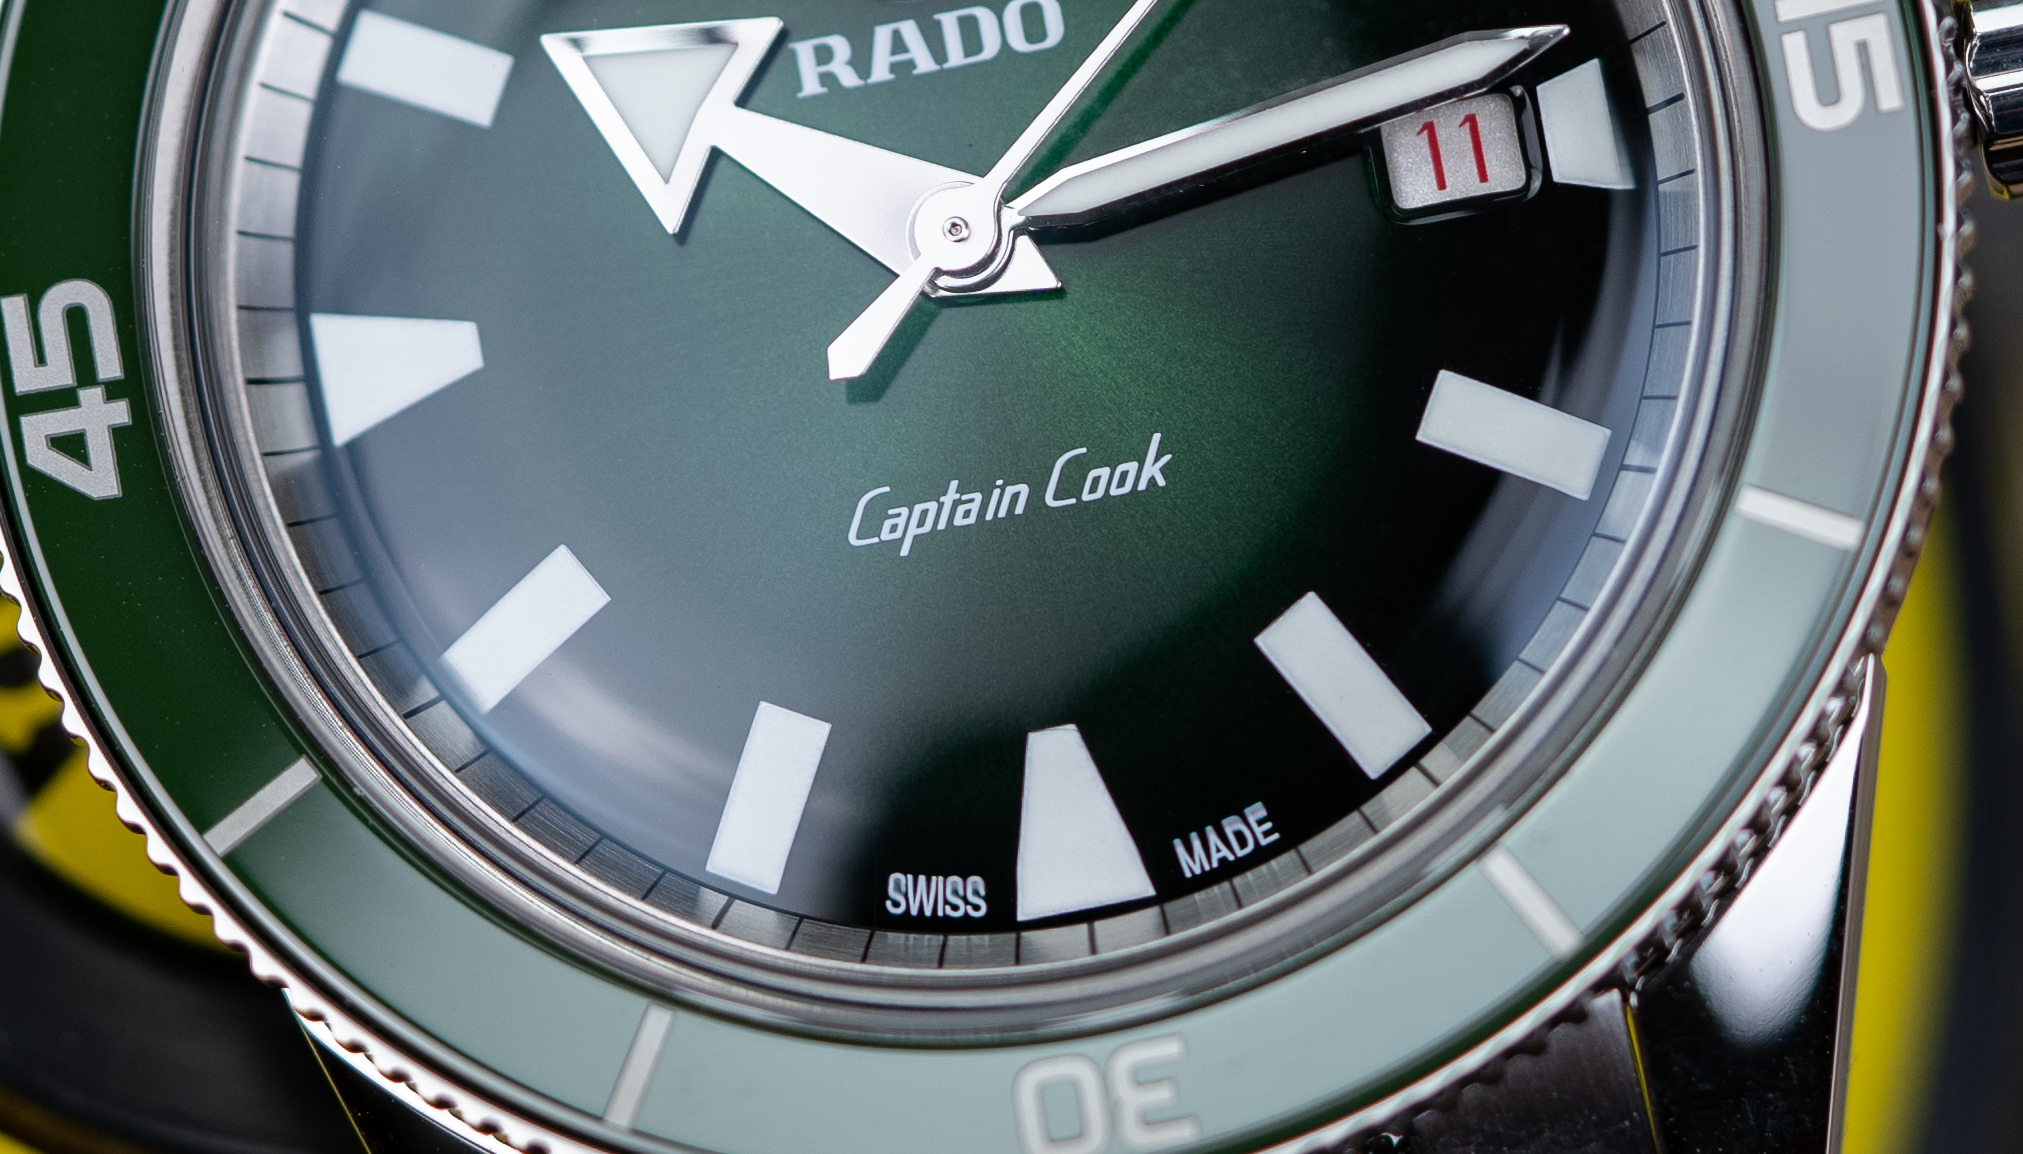 Rado-Captain-Cook-Automatic-Gruen-Test-Uhr